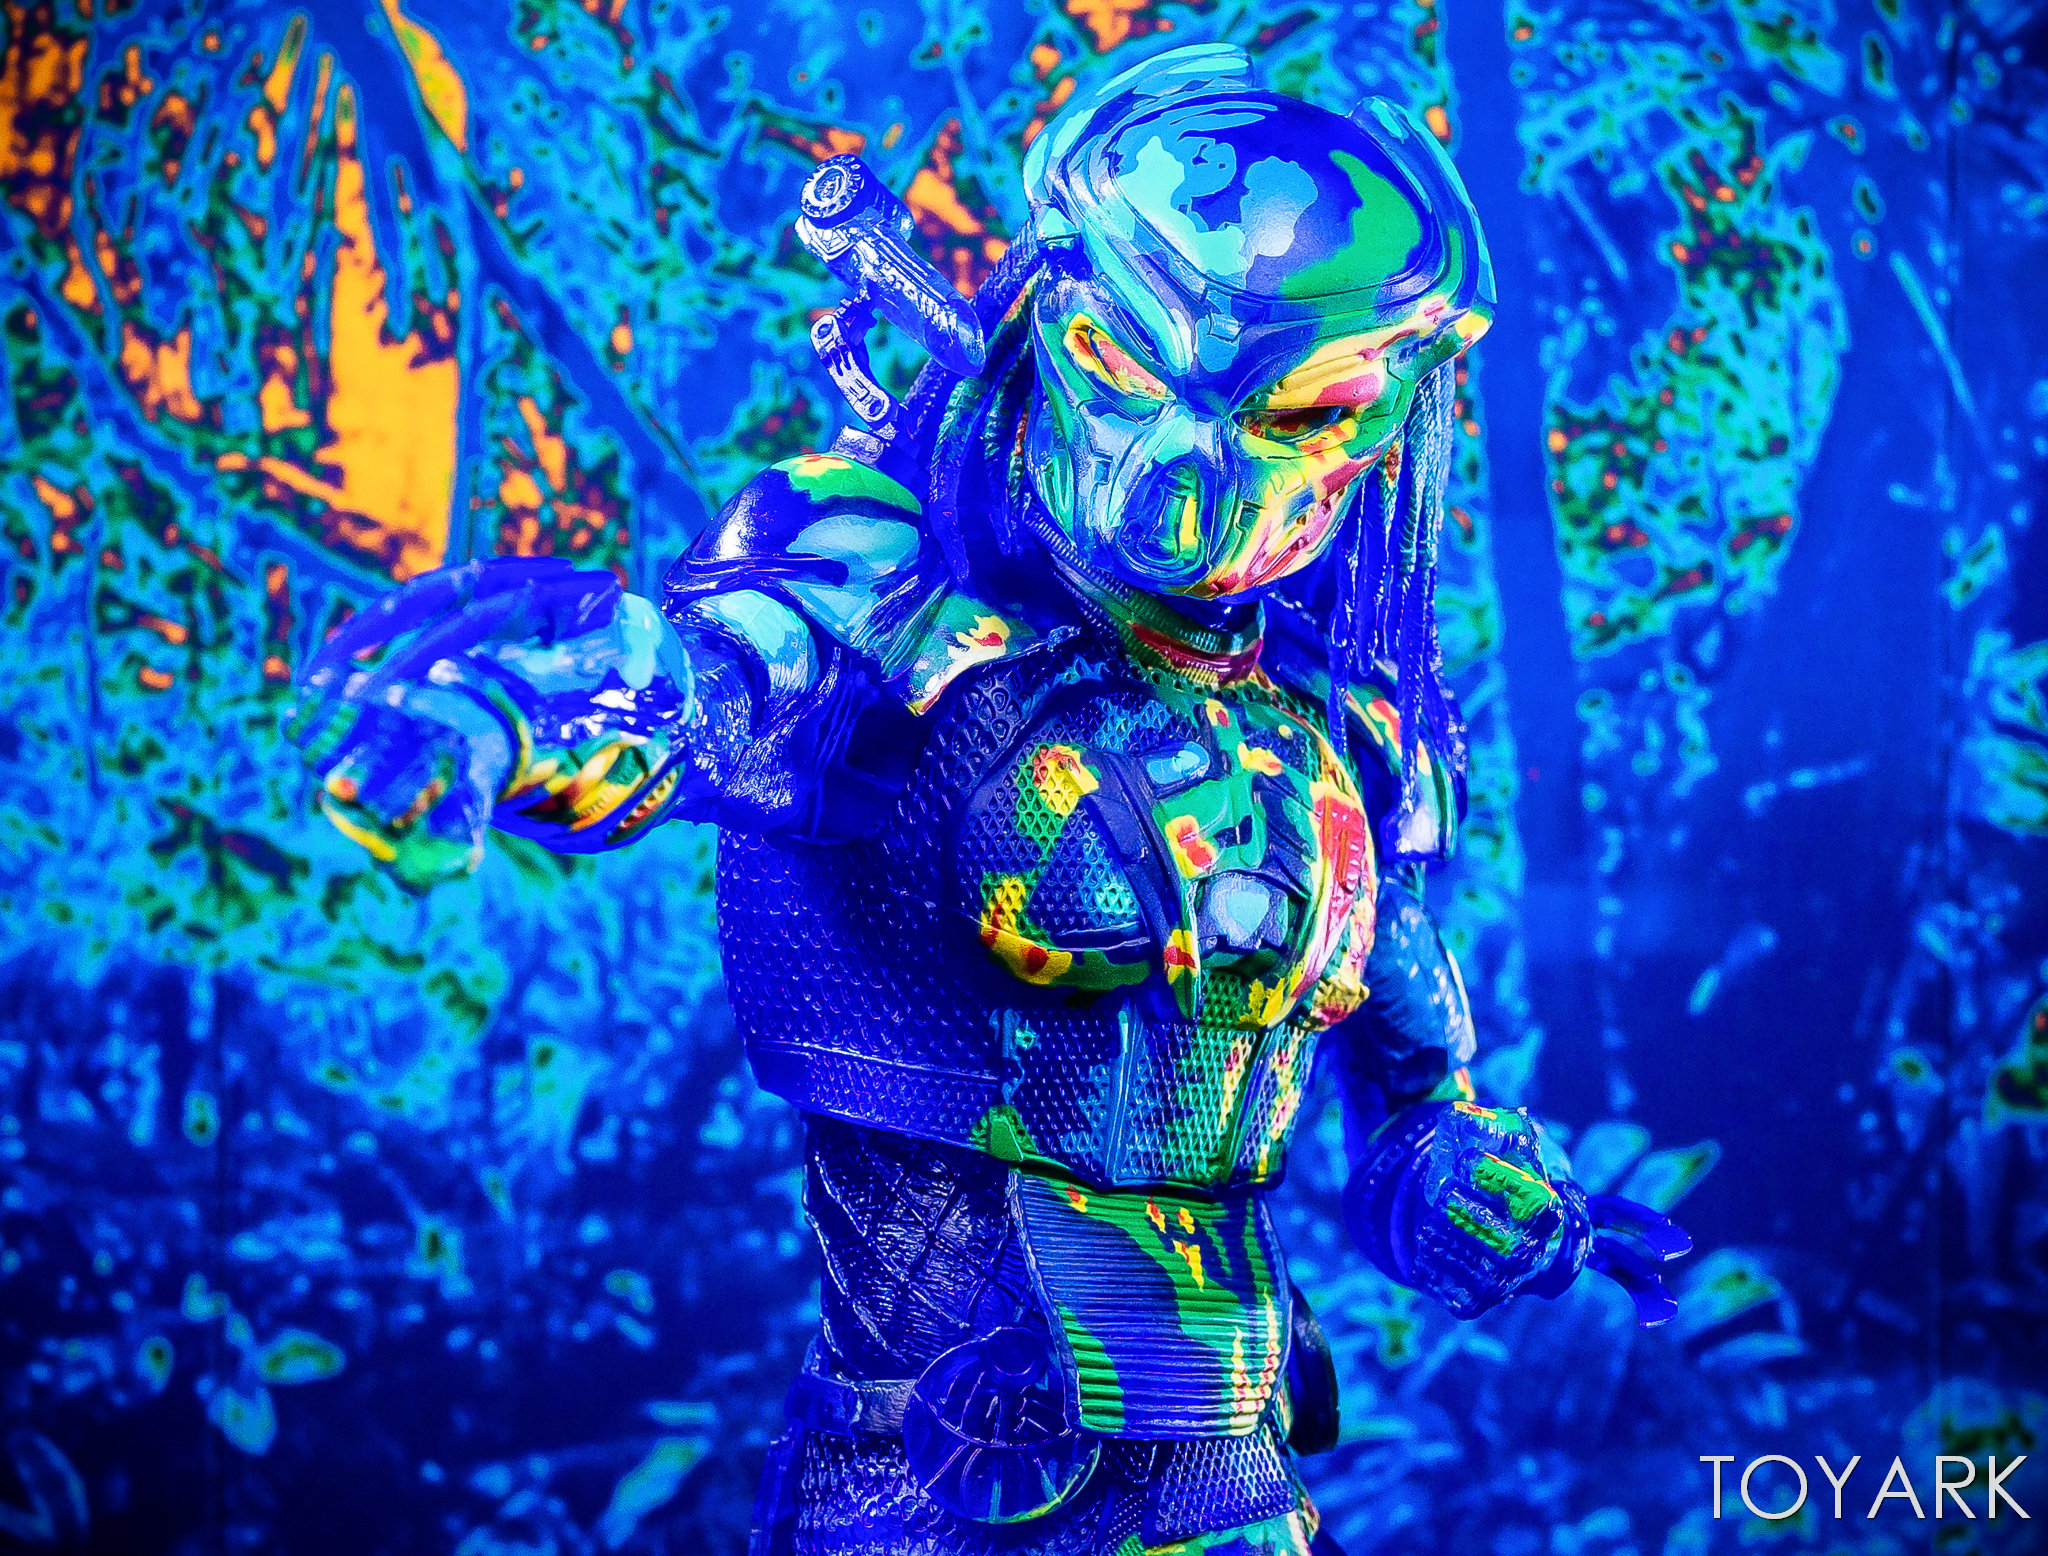 https://news.toyark.com/wp-content/uploads/sites/4/2018/12/NECA-Predator-2018-Thermal-Vision-Predator-035.jpg